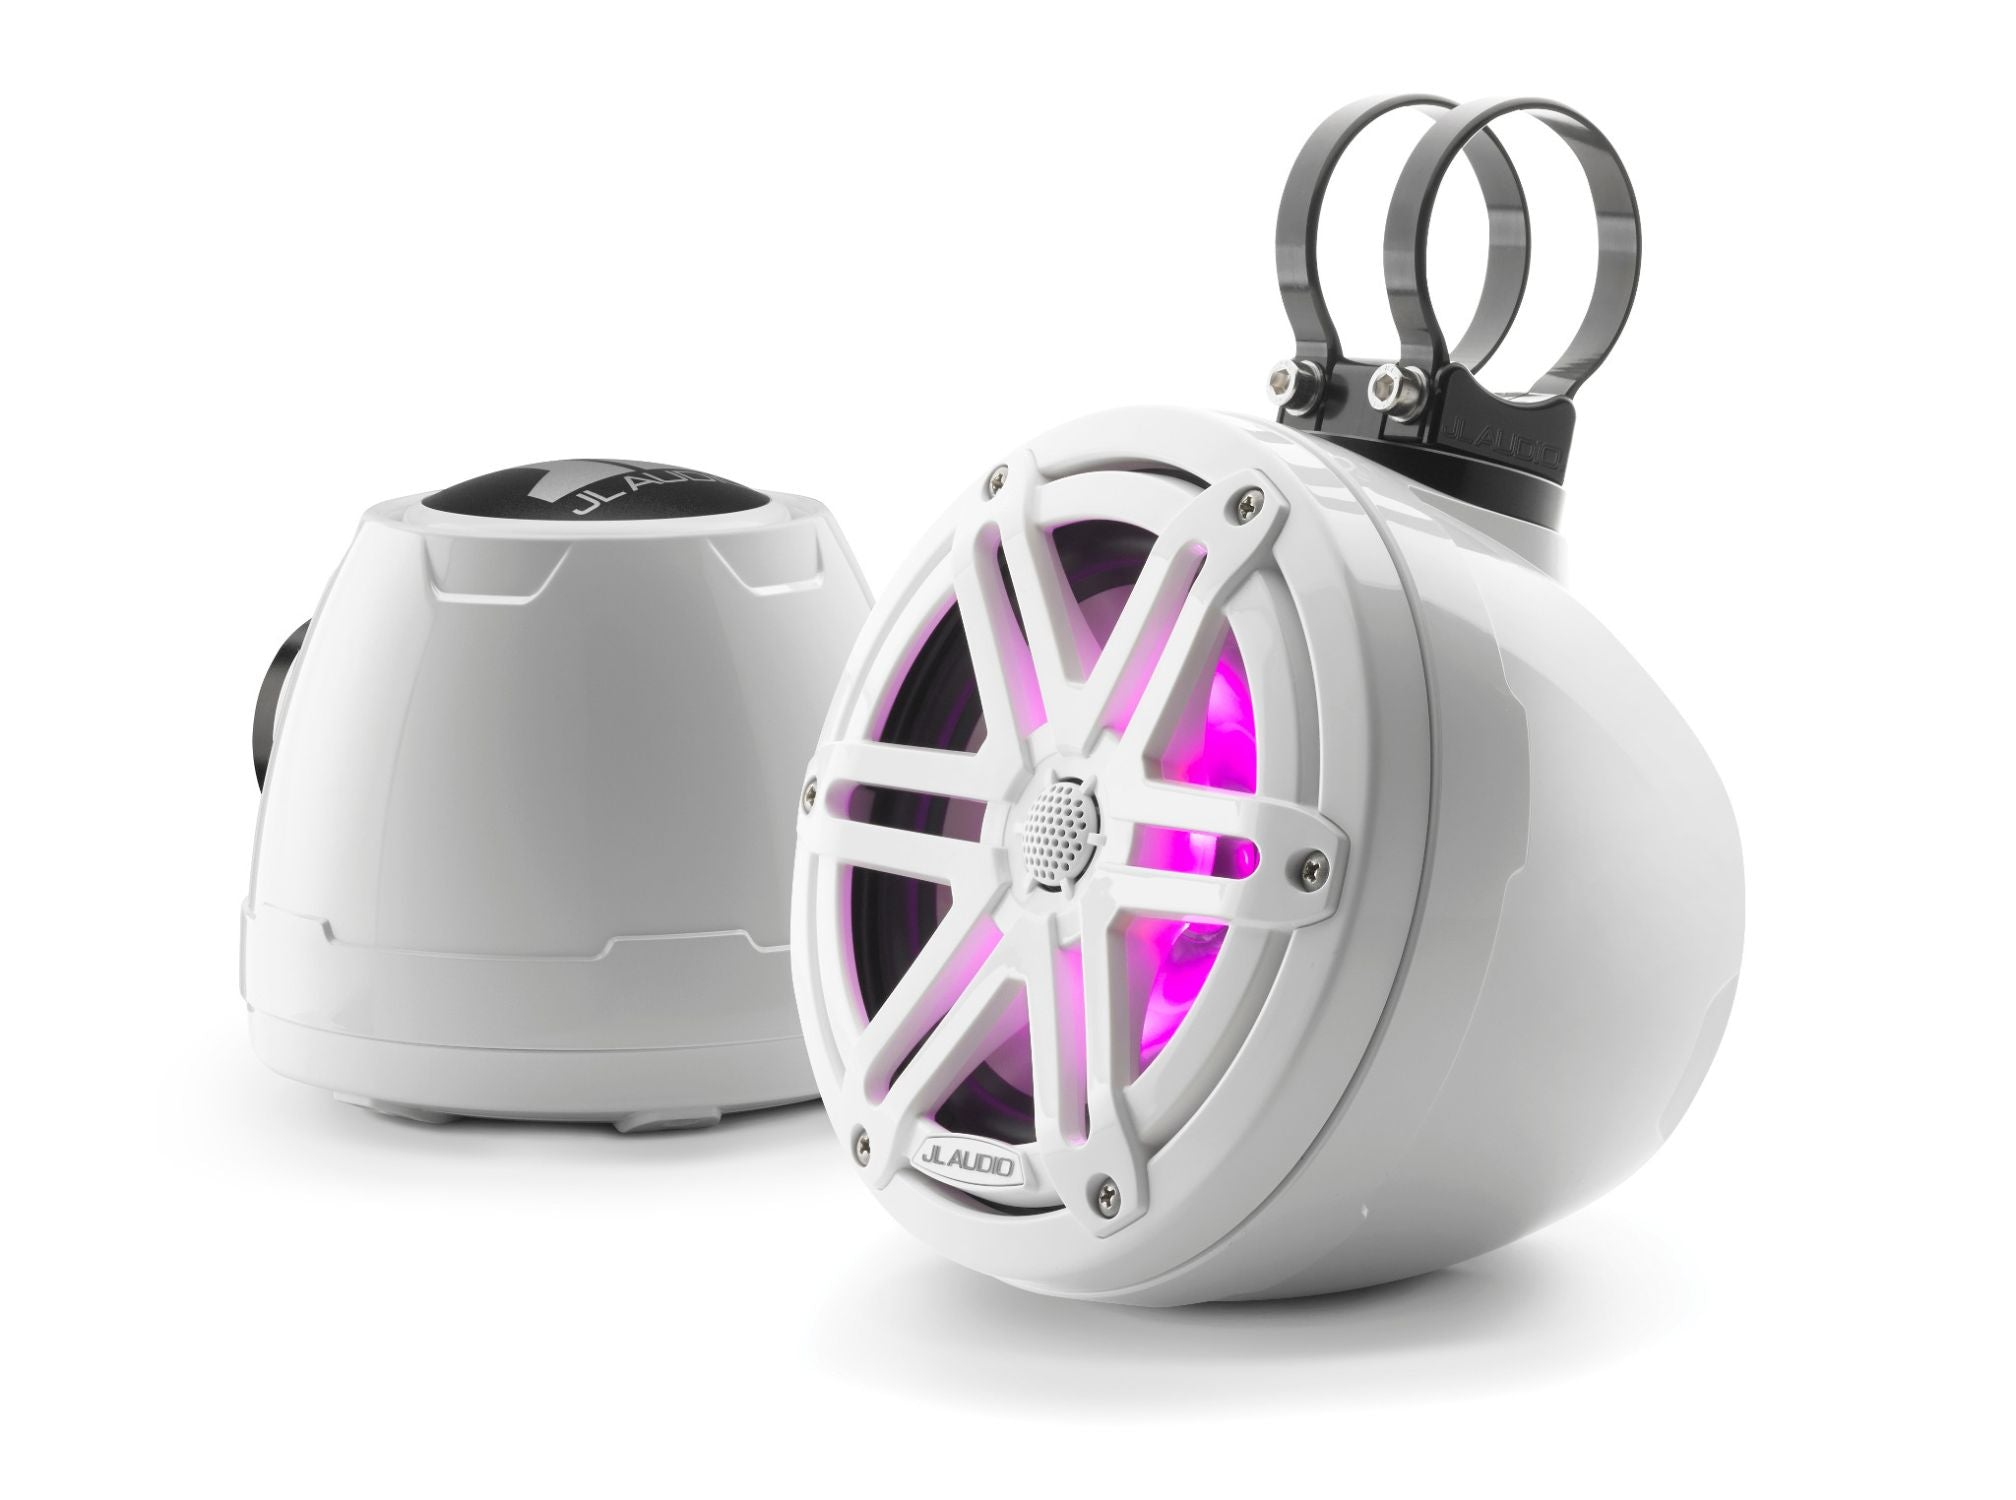 Pair of M3-650VEX-Gw-S-Gw-i Enclosed Speaker Lit with Pink